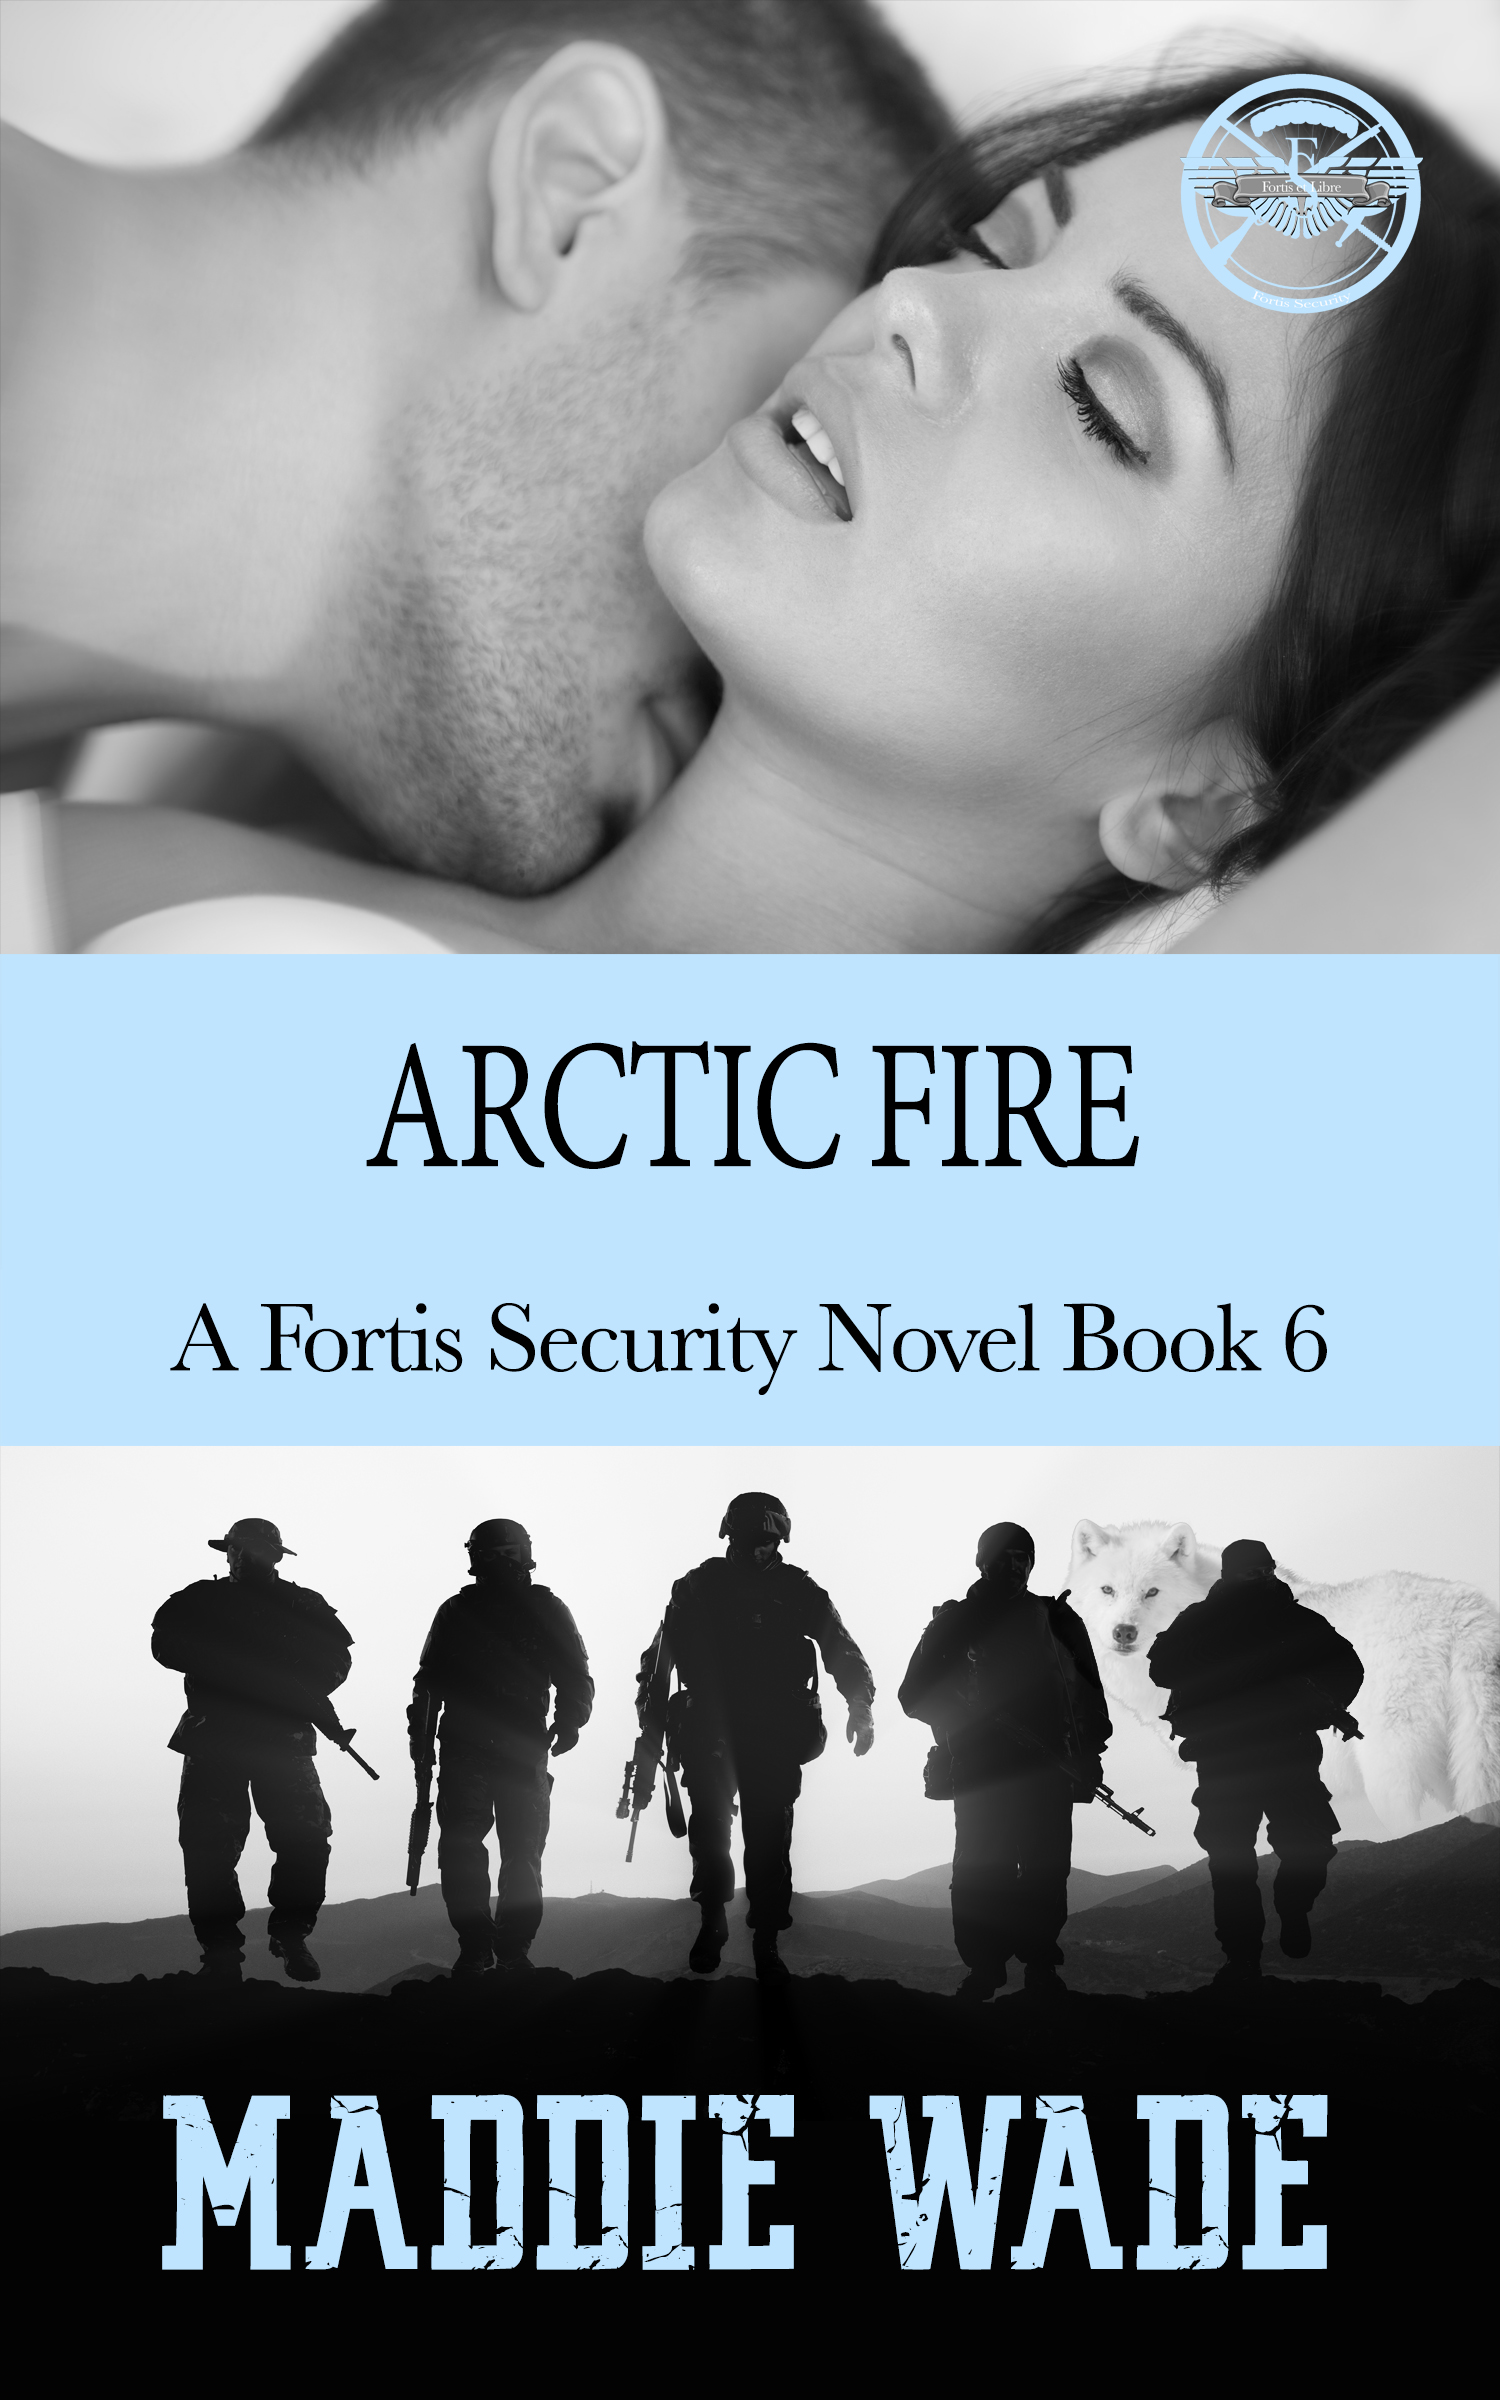 image of book cover named artic fire